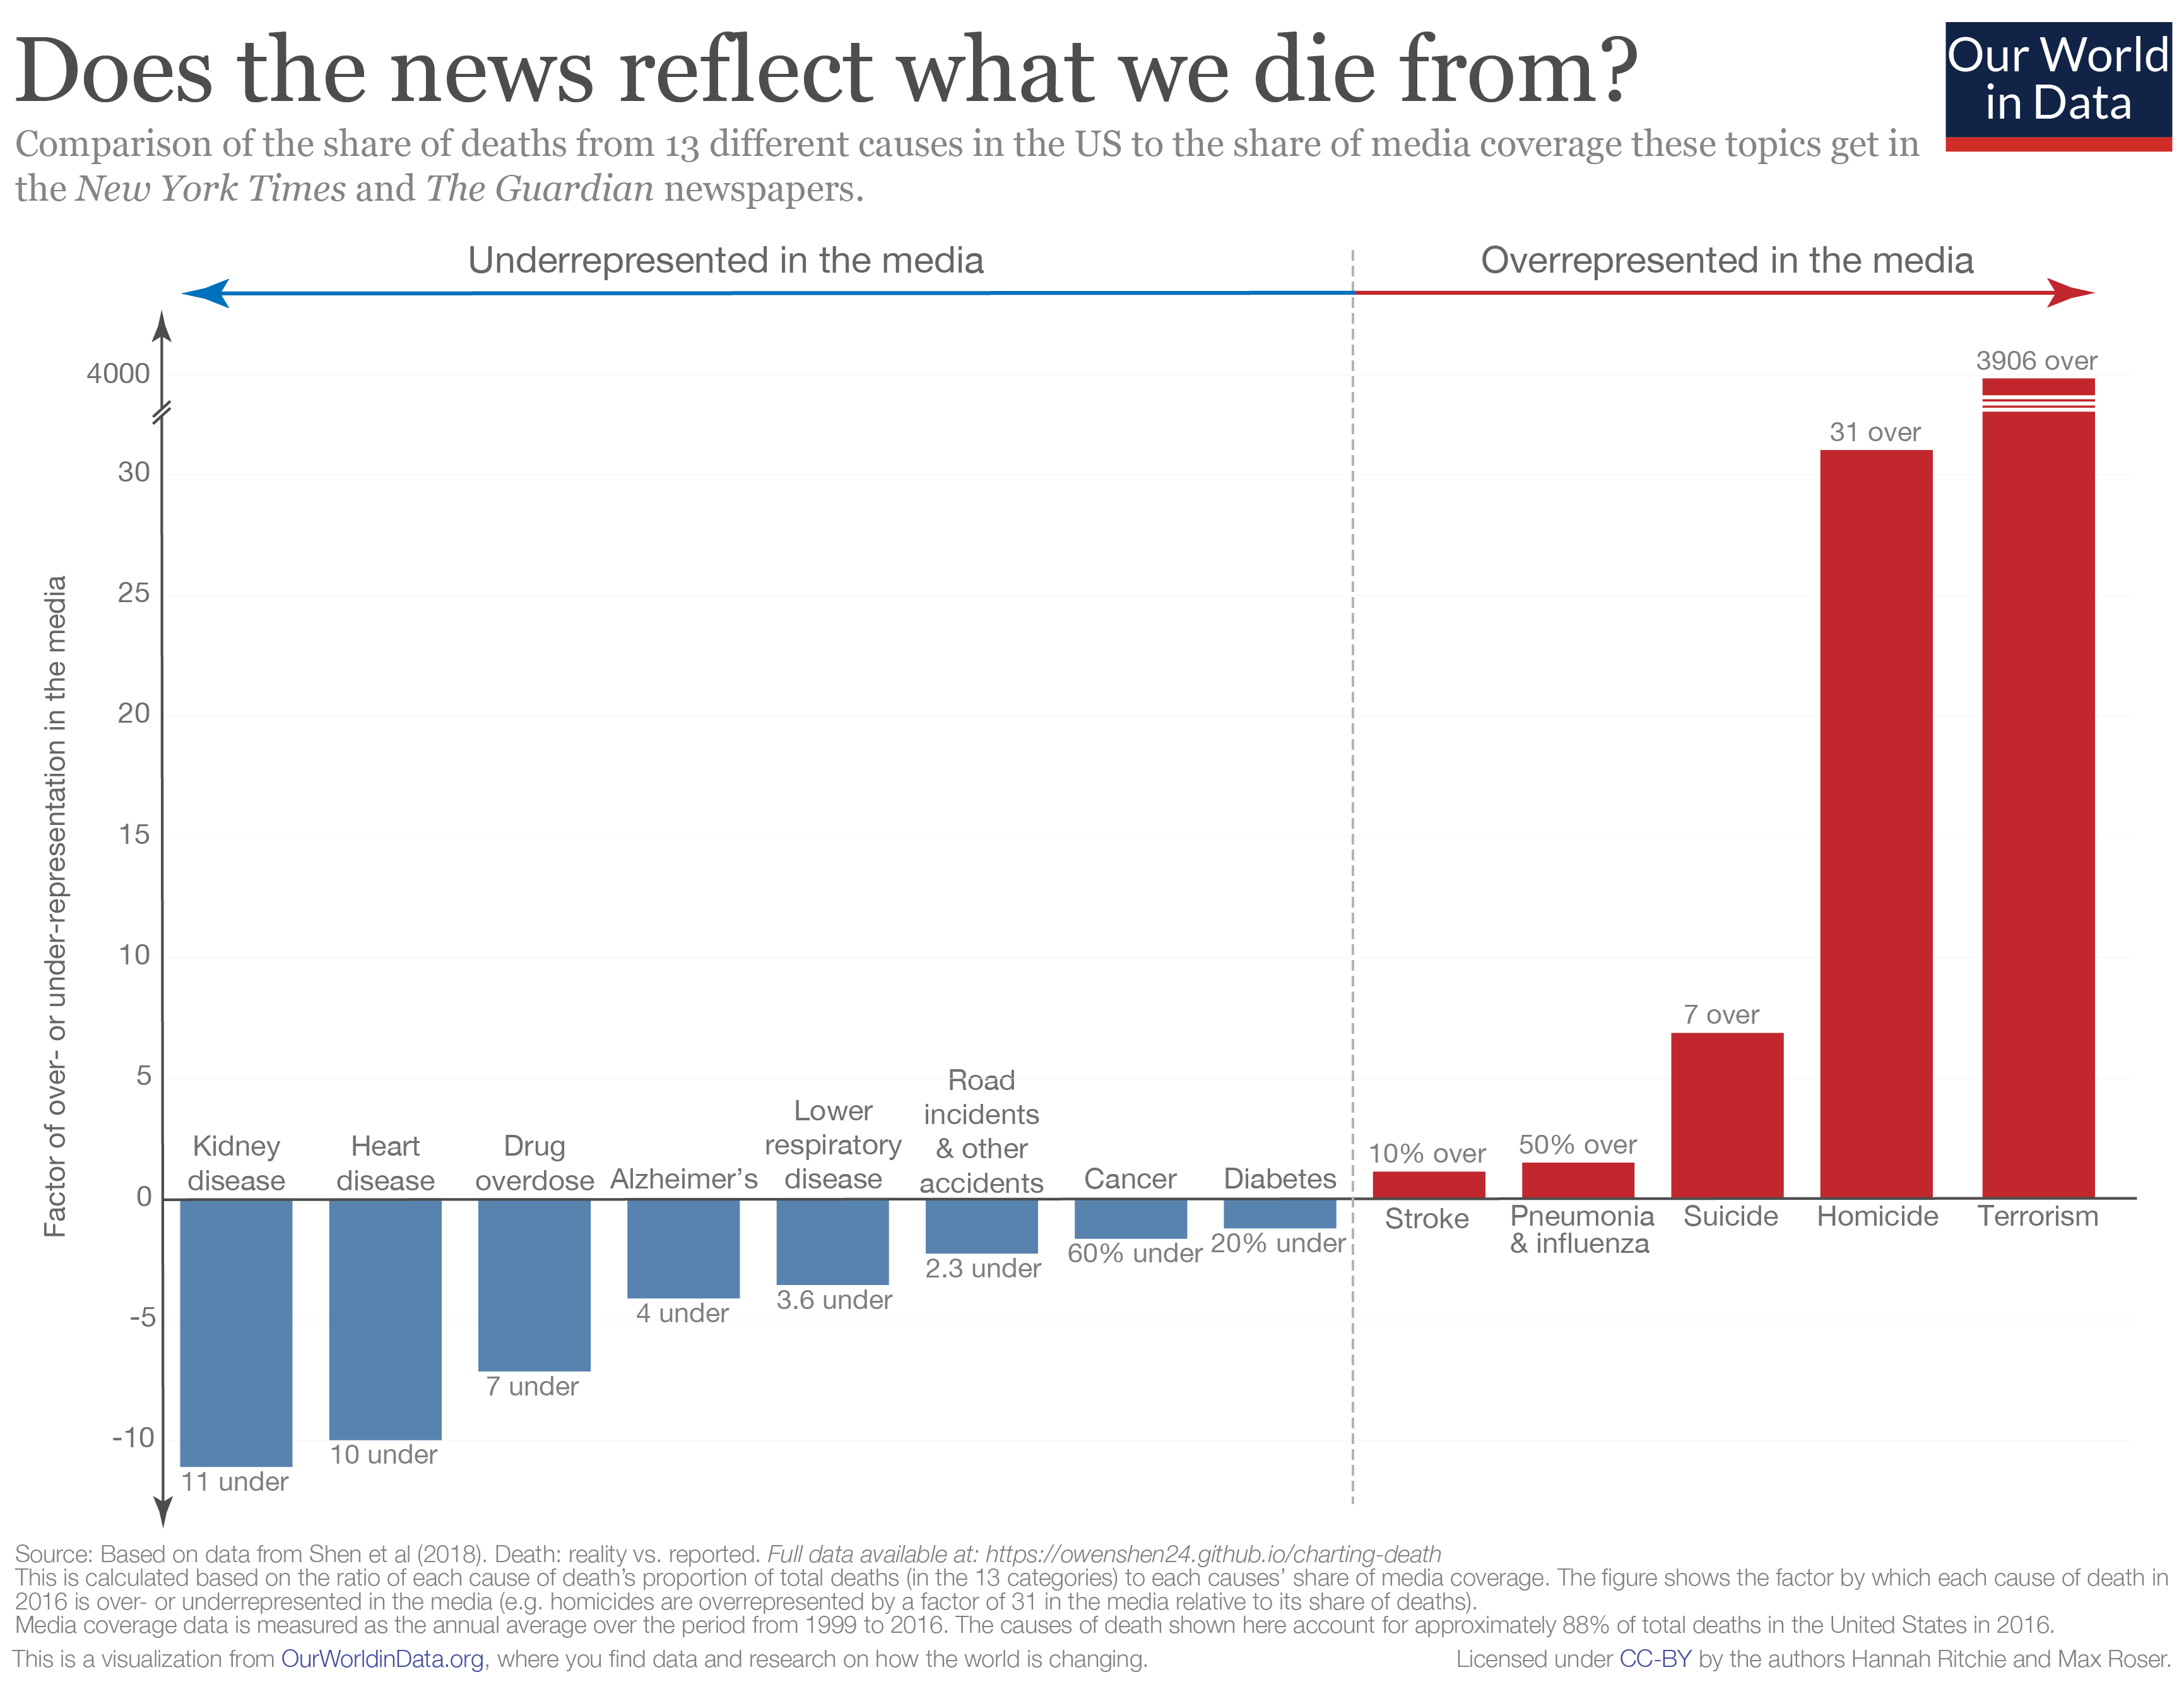 Over-and-underrepresentation-of-deaths-in-media.png